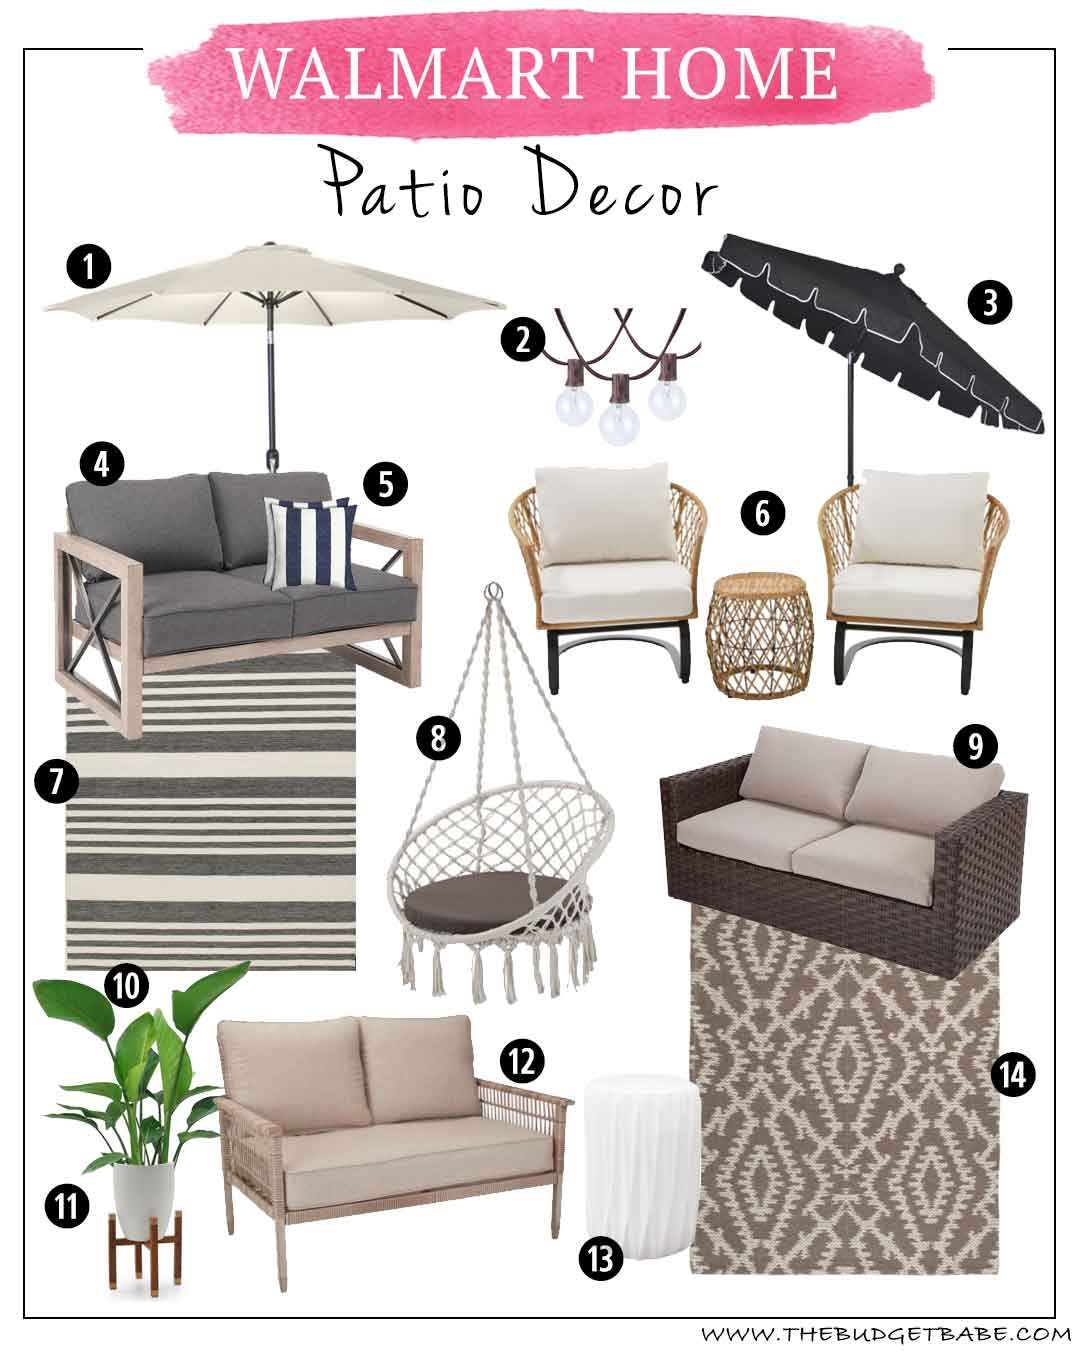 Walmart Patio Decor On A Budget | Outdoor Rugs, Patio Furniture, Umbrellas, Pillows and Plants